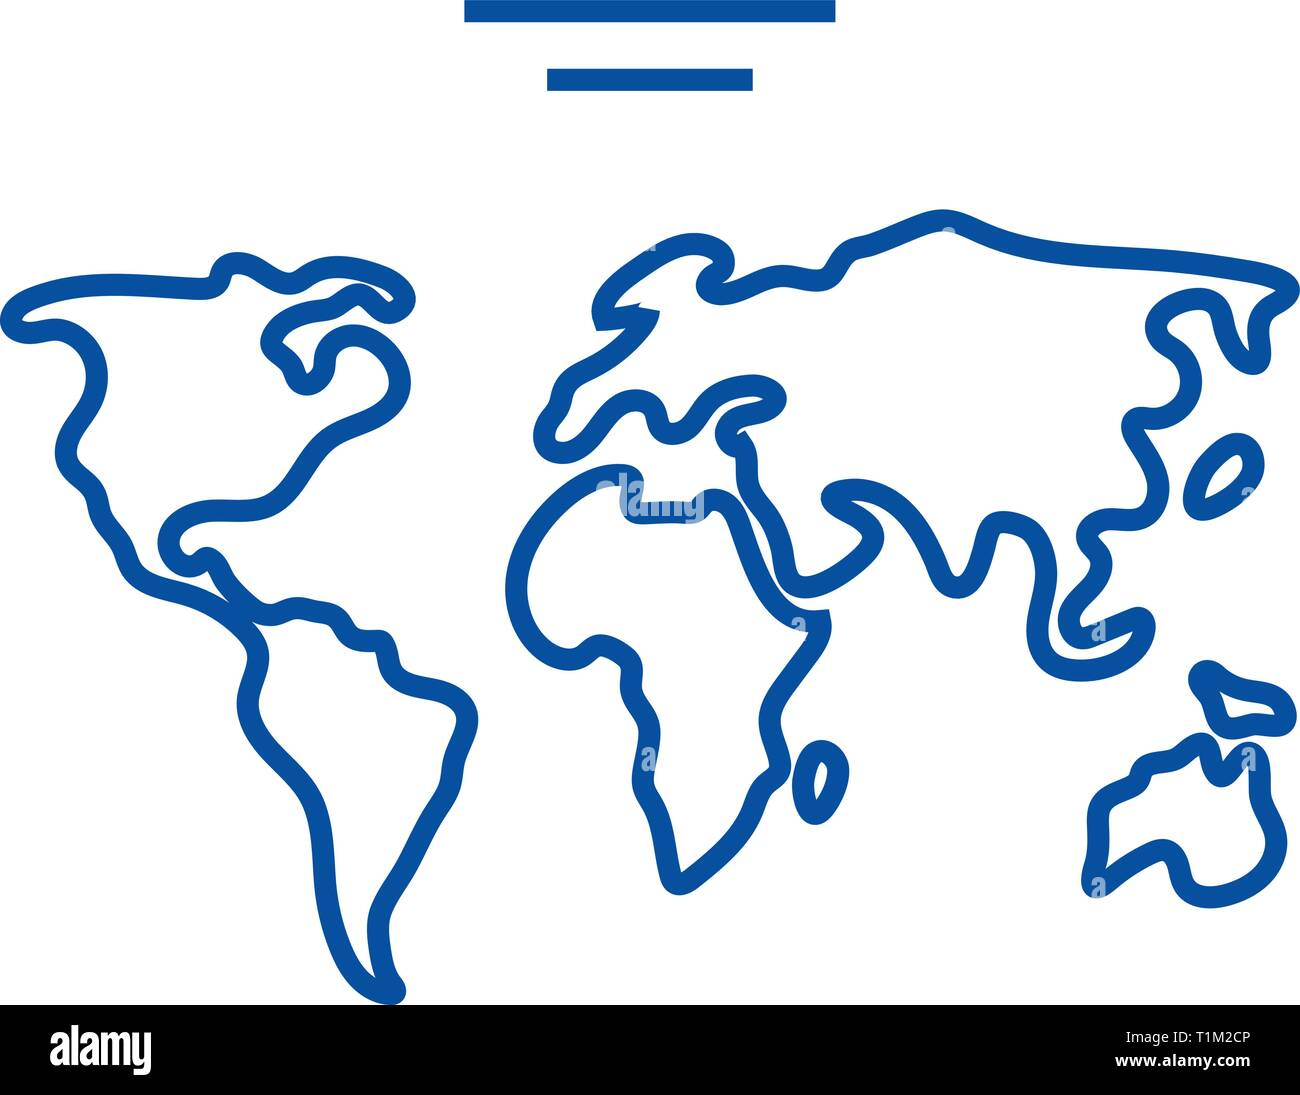 World Map Outline Stock Photos & World Map Outline Stock